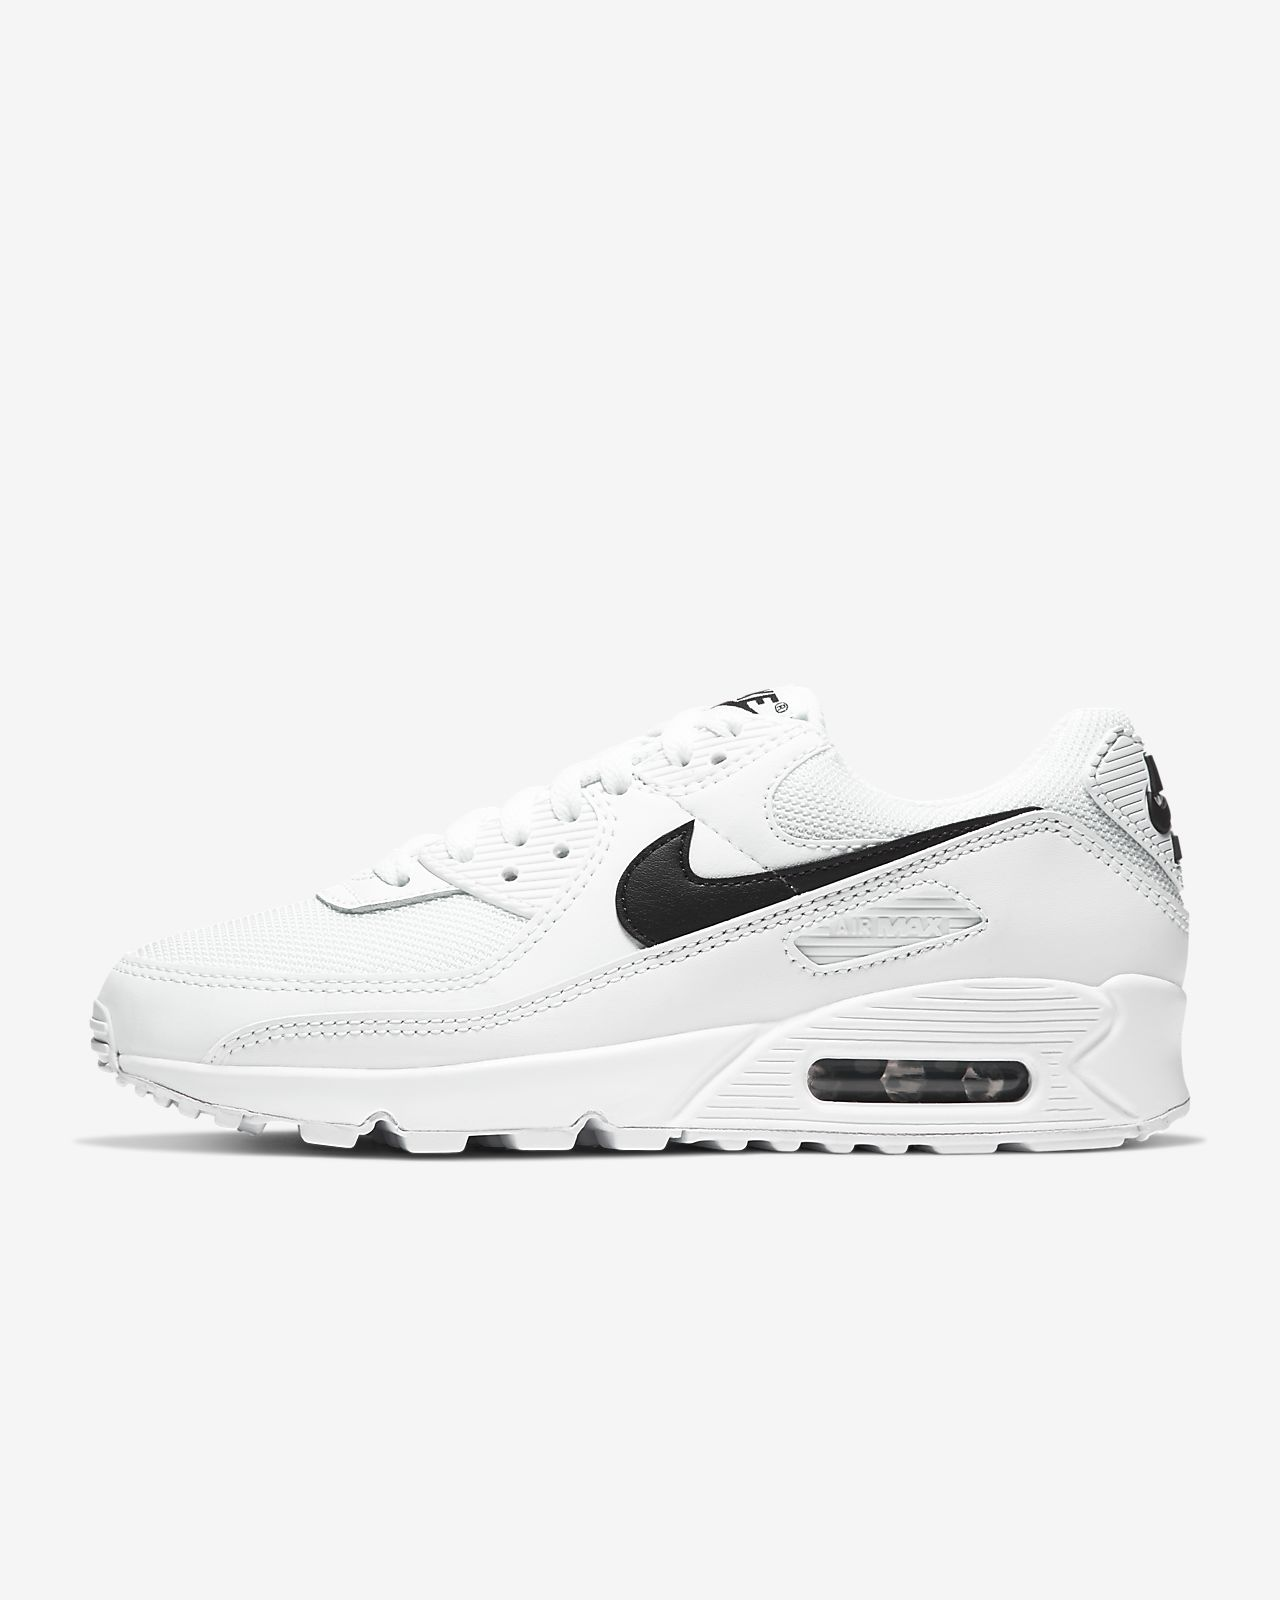 Nike WMNS Air Max 90 White Leopard | Sole Collector